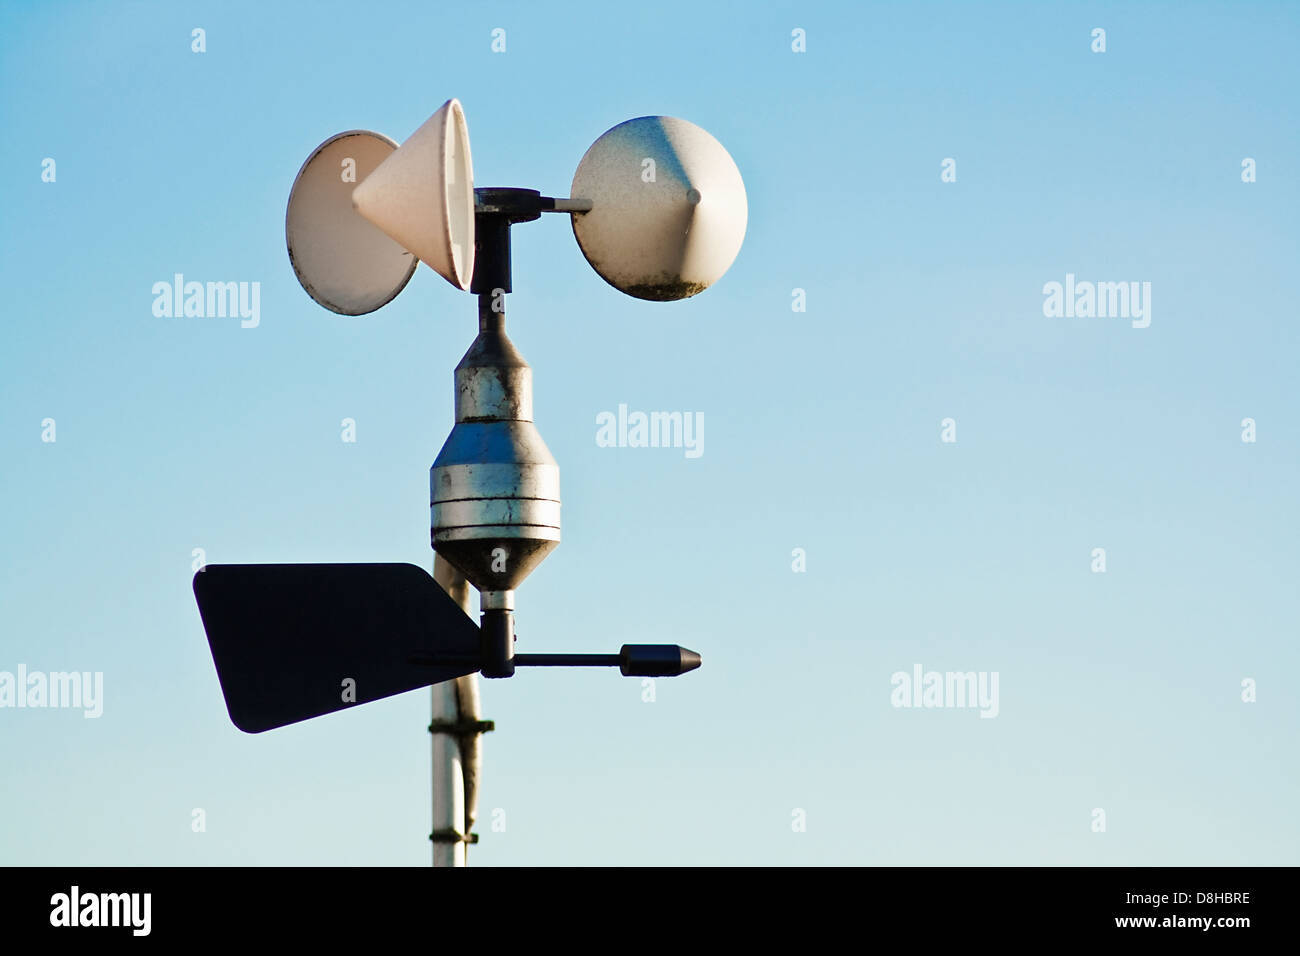 Instrument Measure Wind Speed Stock Photos & Instrument